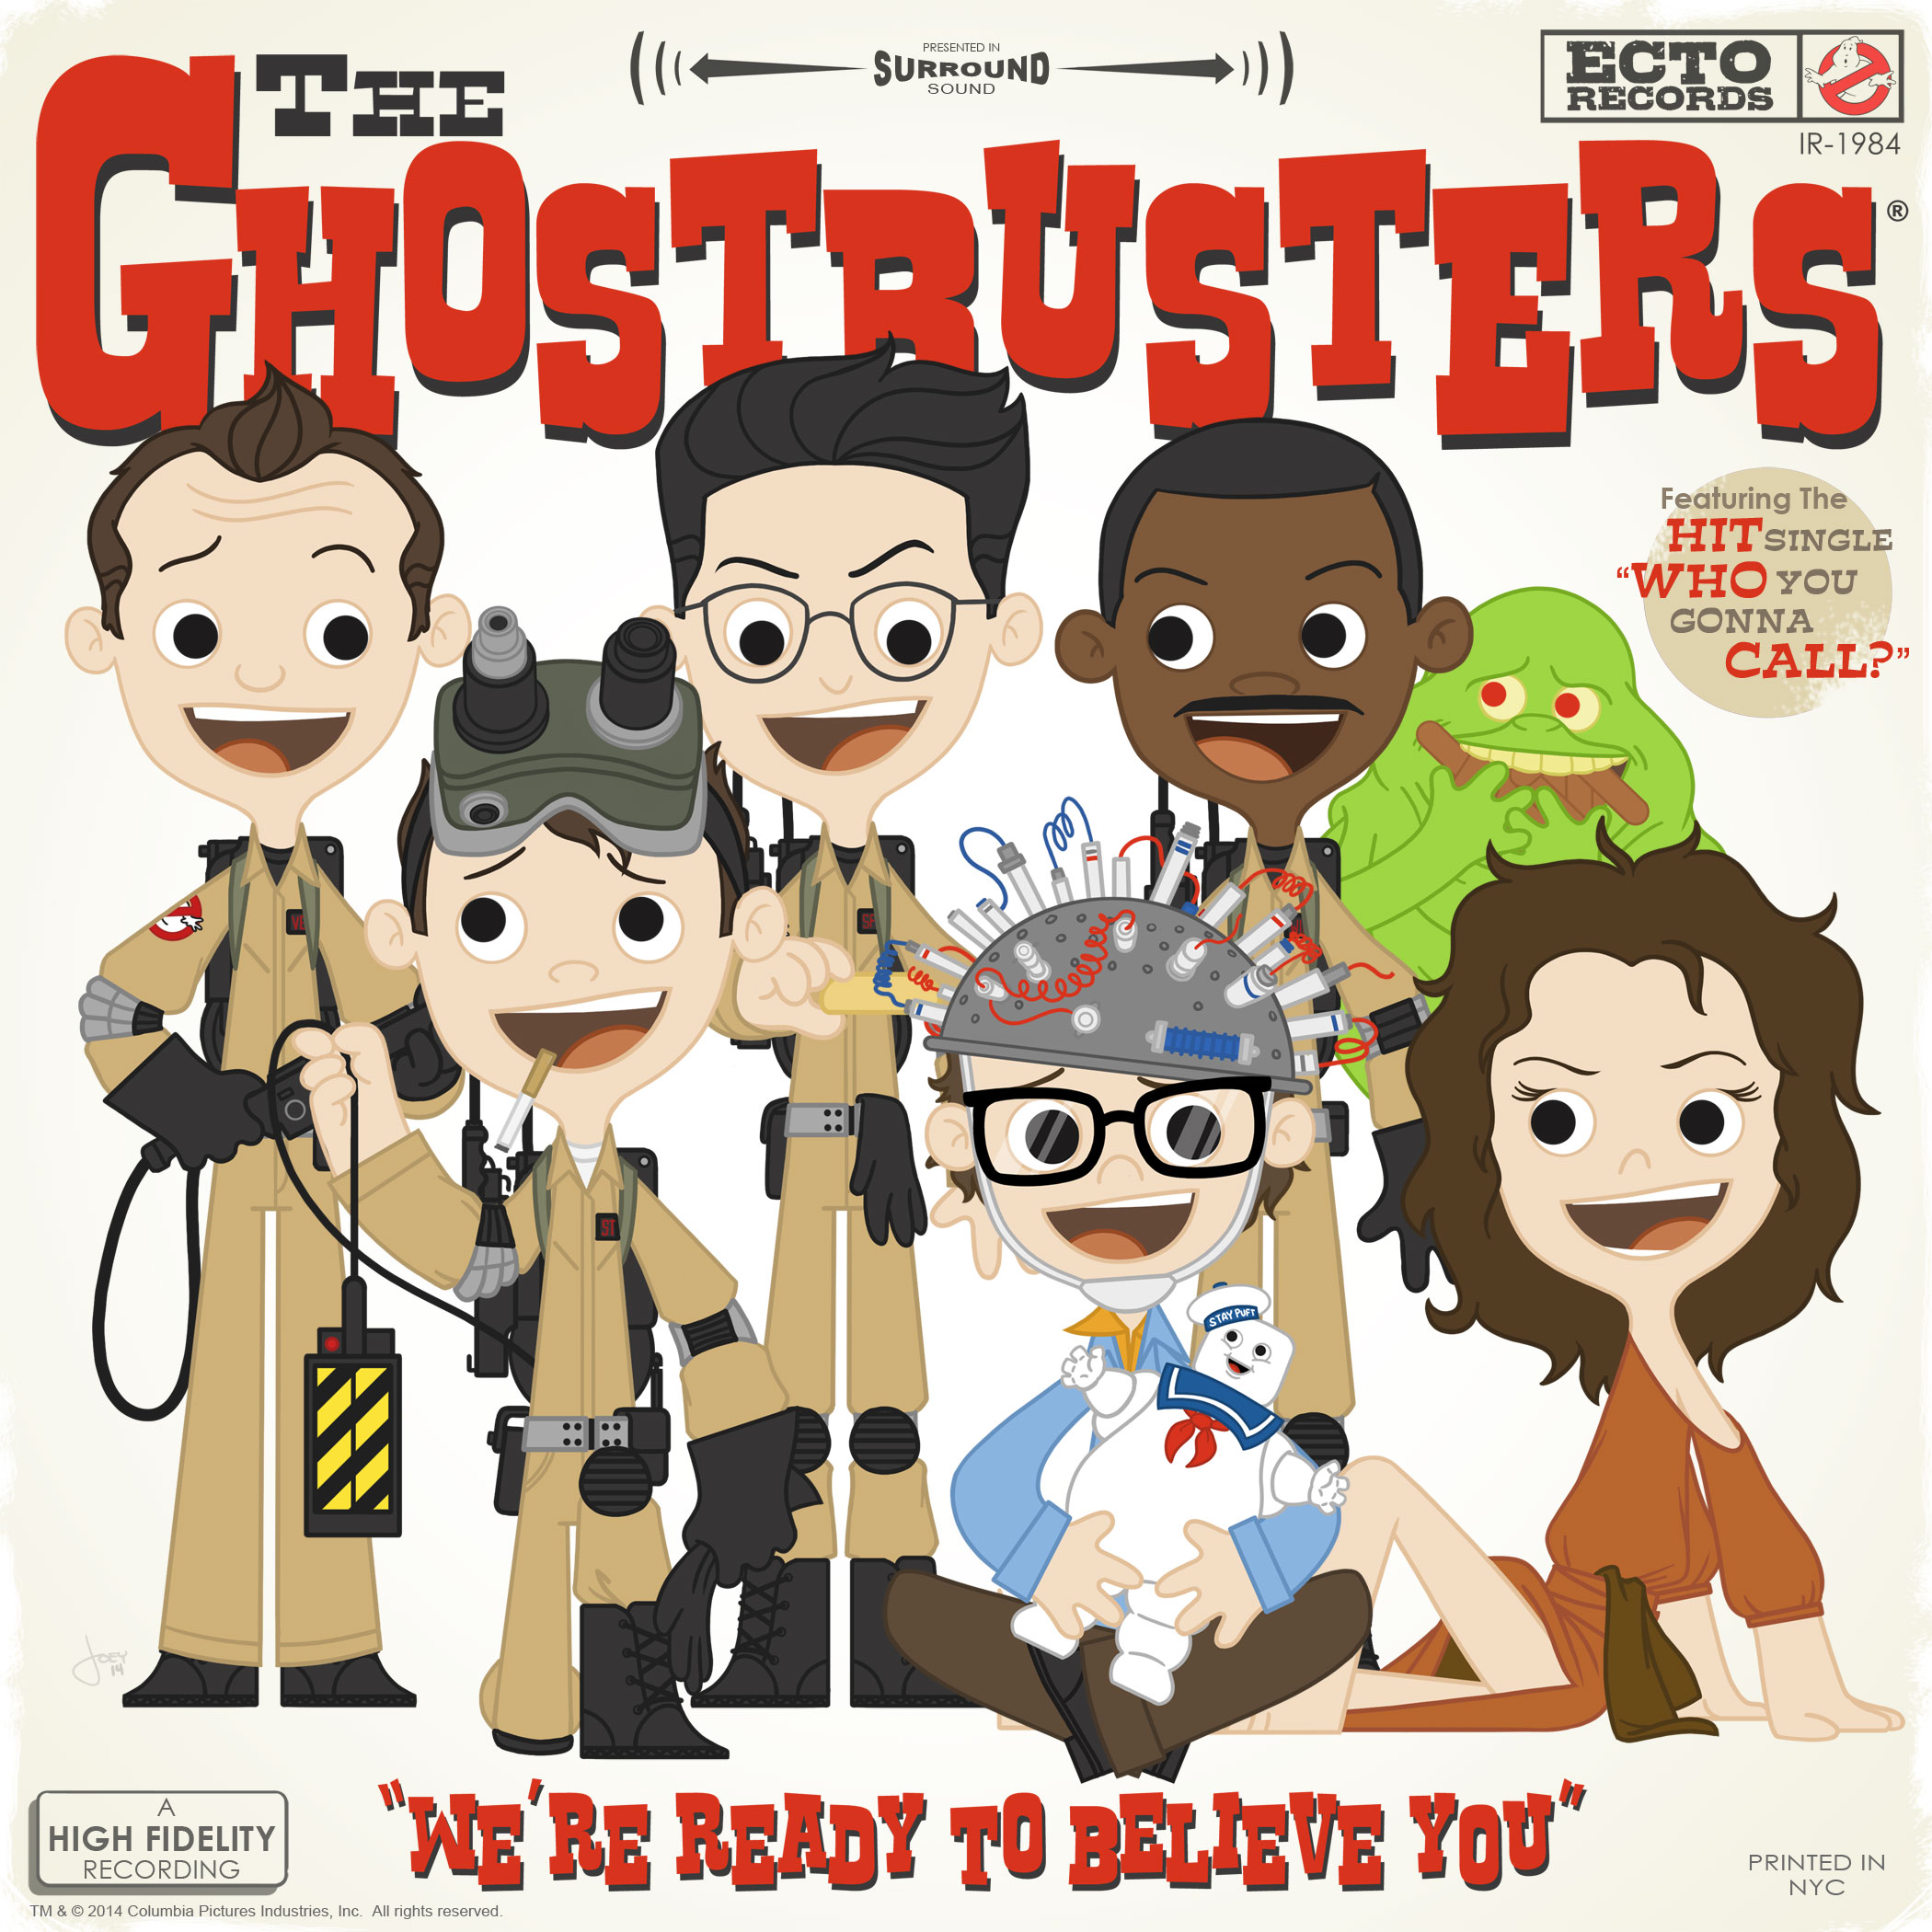 GhostbustersCover.jpg